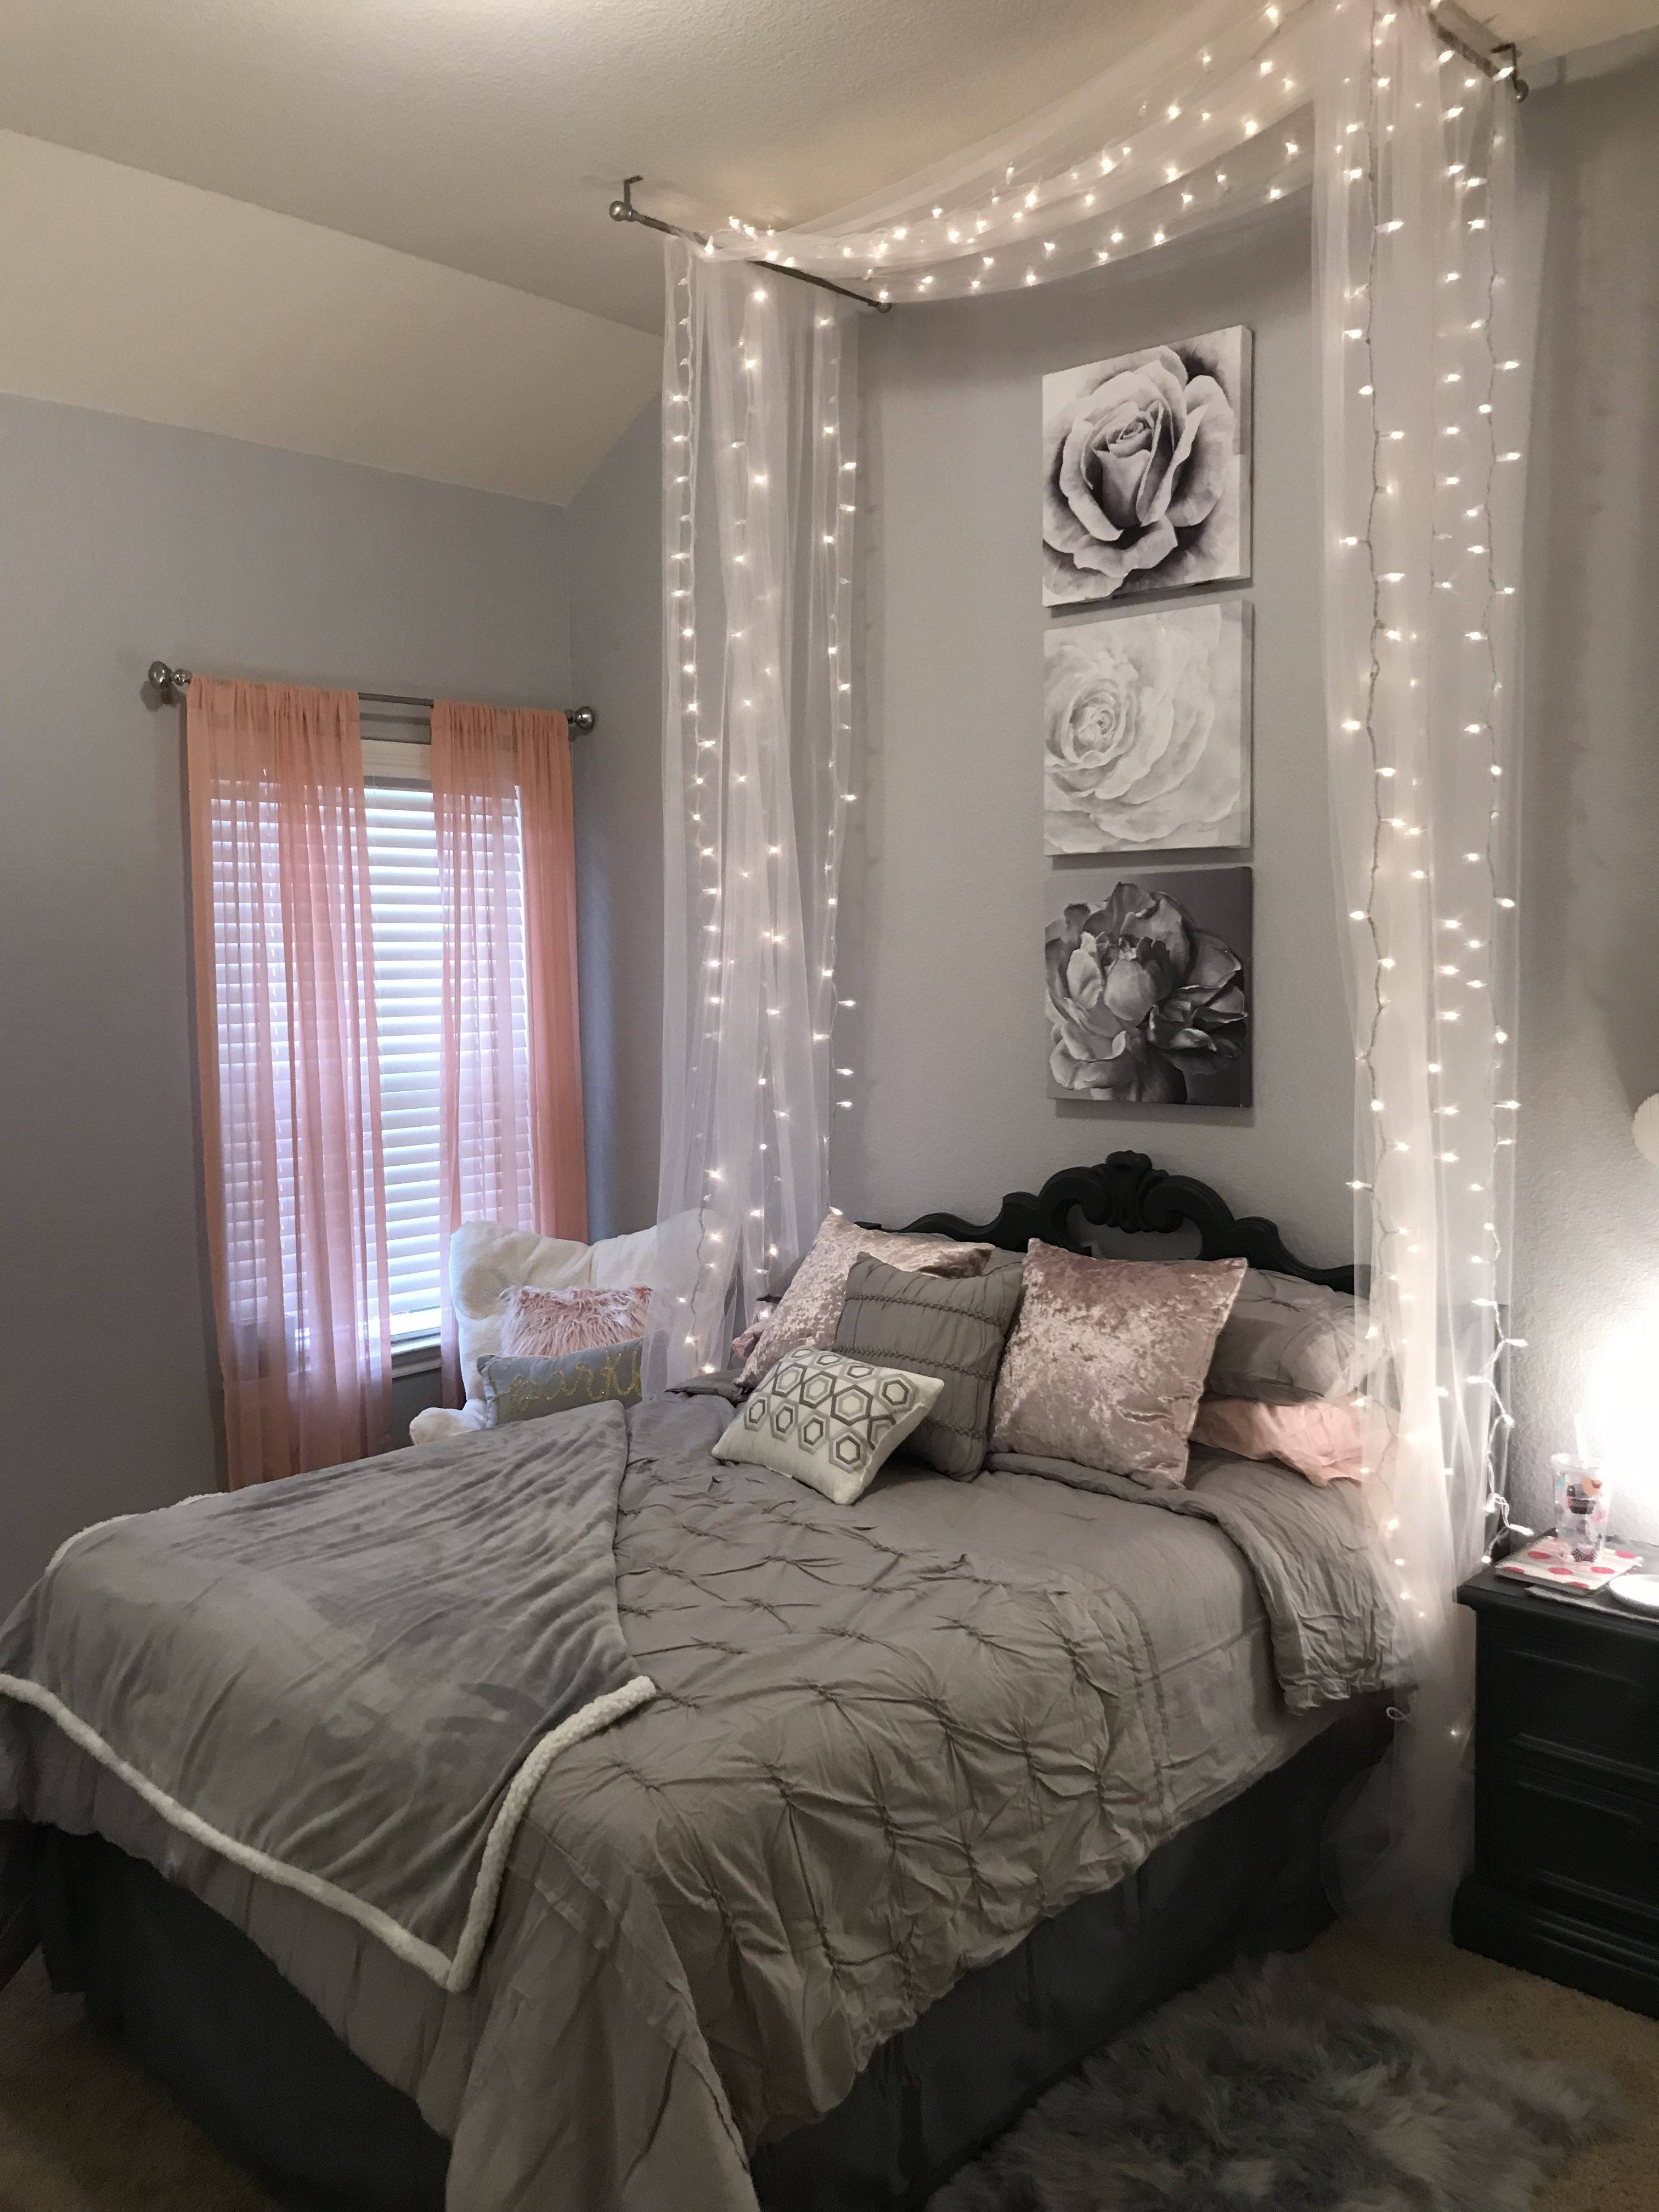 teenage girl bedroom ideas cheap awesome 30 bedroom ideas for teenage girls jcelectricalcontractors of teenage girl bedroom ideas cheap